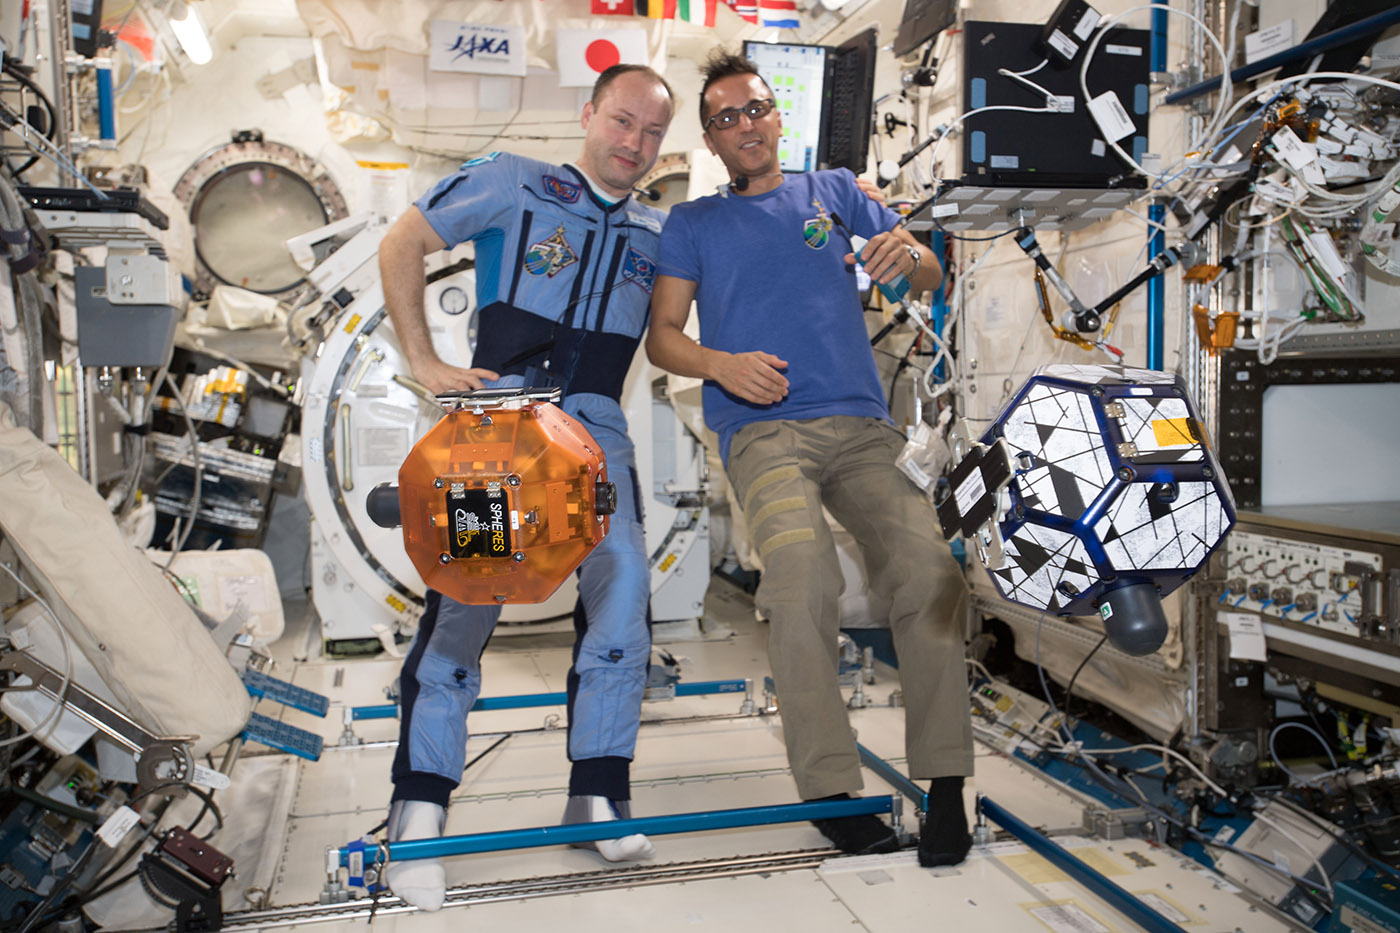 ISS astronauts Sasha Misurkin and Joe Acaba were referees for the 2017 Zero Robotics High School Tournament